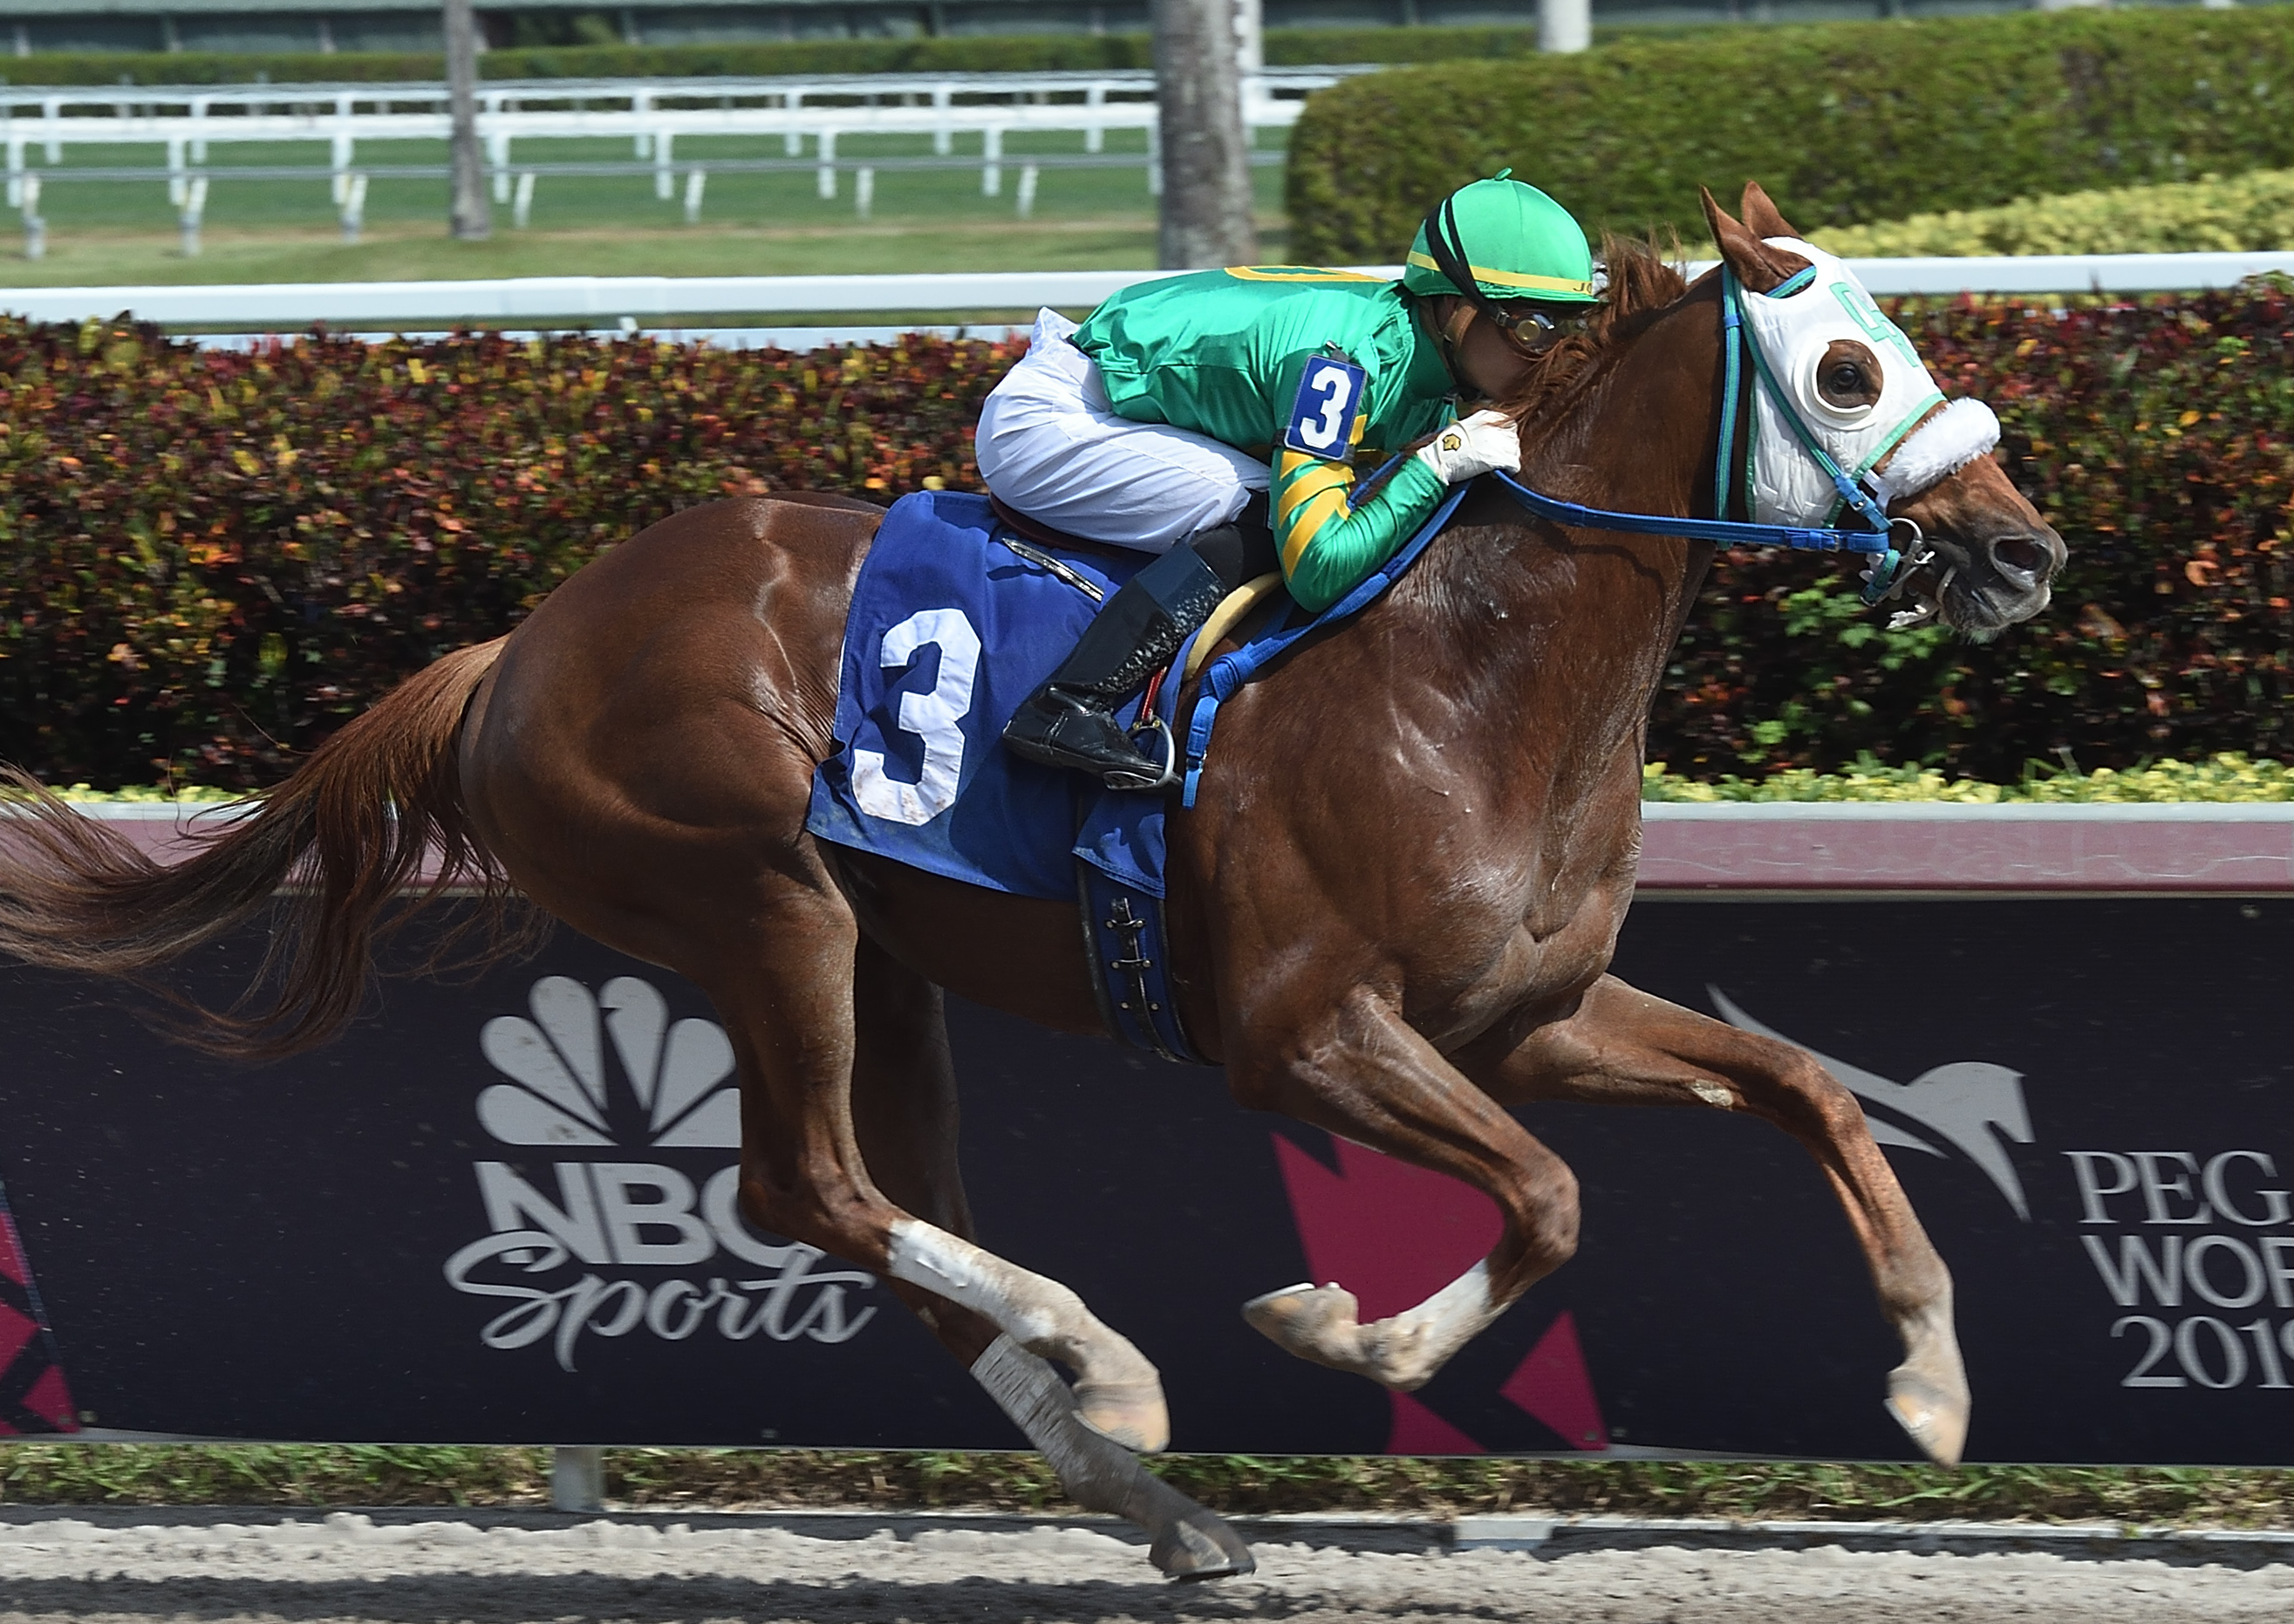 Math Wizard: he will miss the Pegasus World Cup this weekend after a minor setback as the Saudi Cup is the main goal. Photo: Gulfstream Park